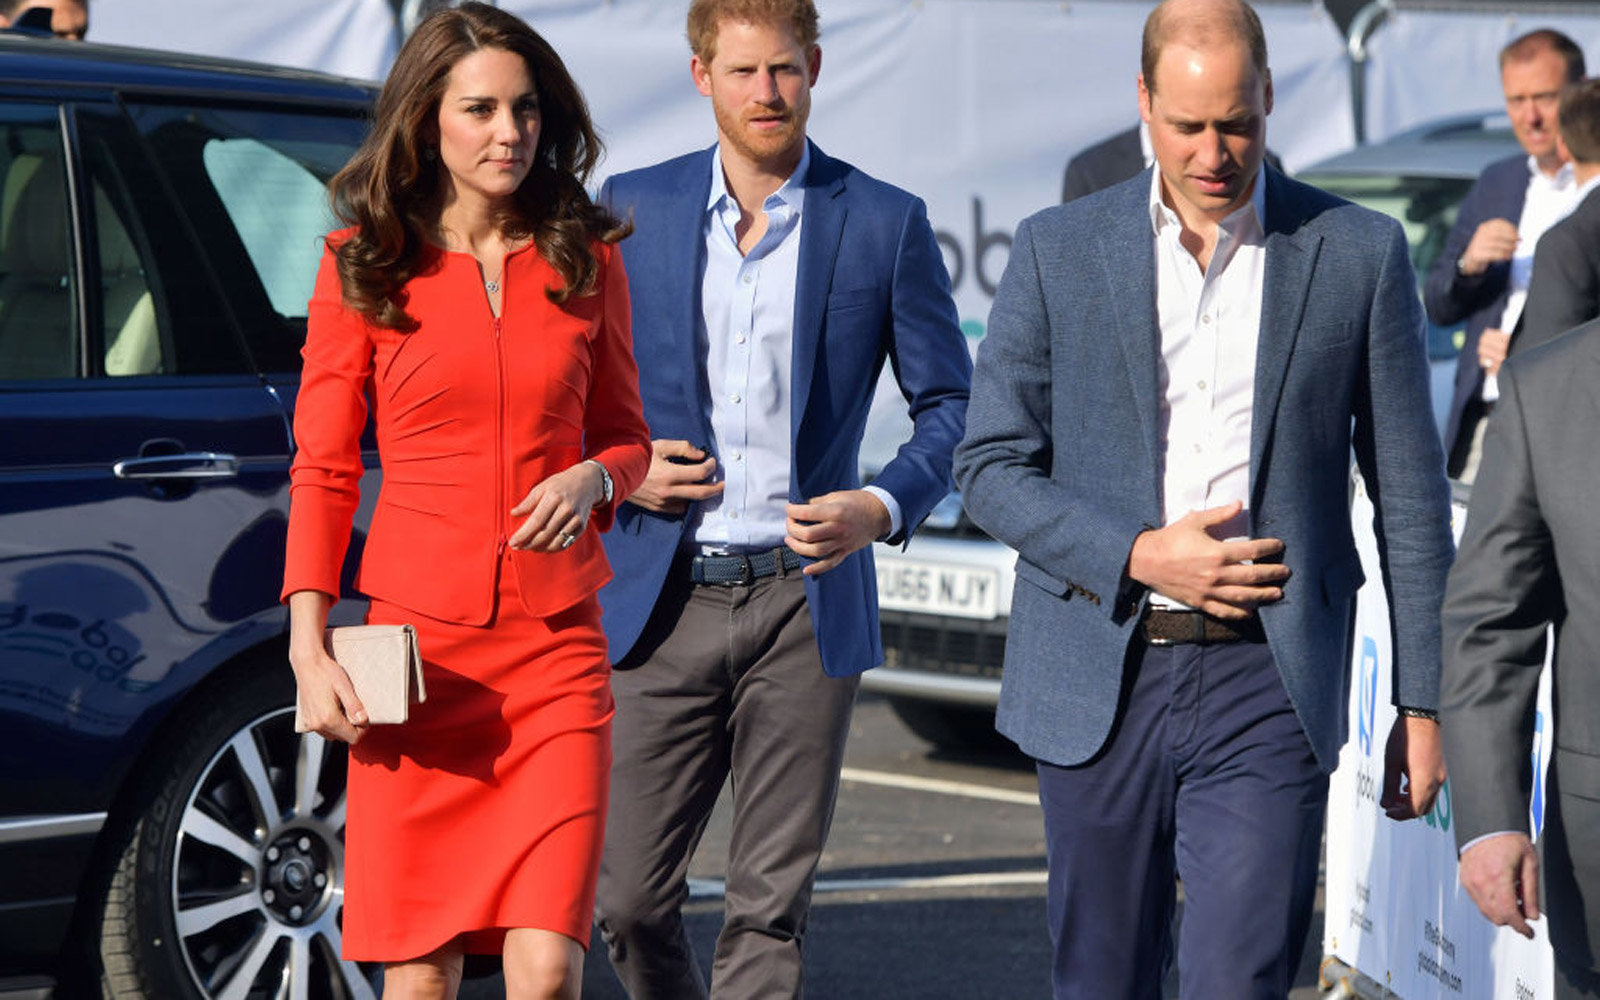 Britain's Catherine, Duchess of Cambridge, Britain's Prince Harry and Britain's Prince William, Duke of Cambridge arrive to open the Global Academy in Hayes, London on April 20, 2017, in support of the Heads Together campaign.  / AFP PHOTO / POOL / Domini